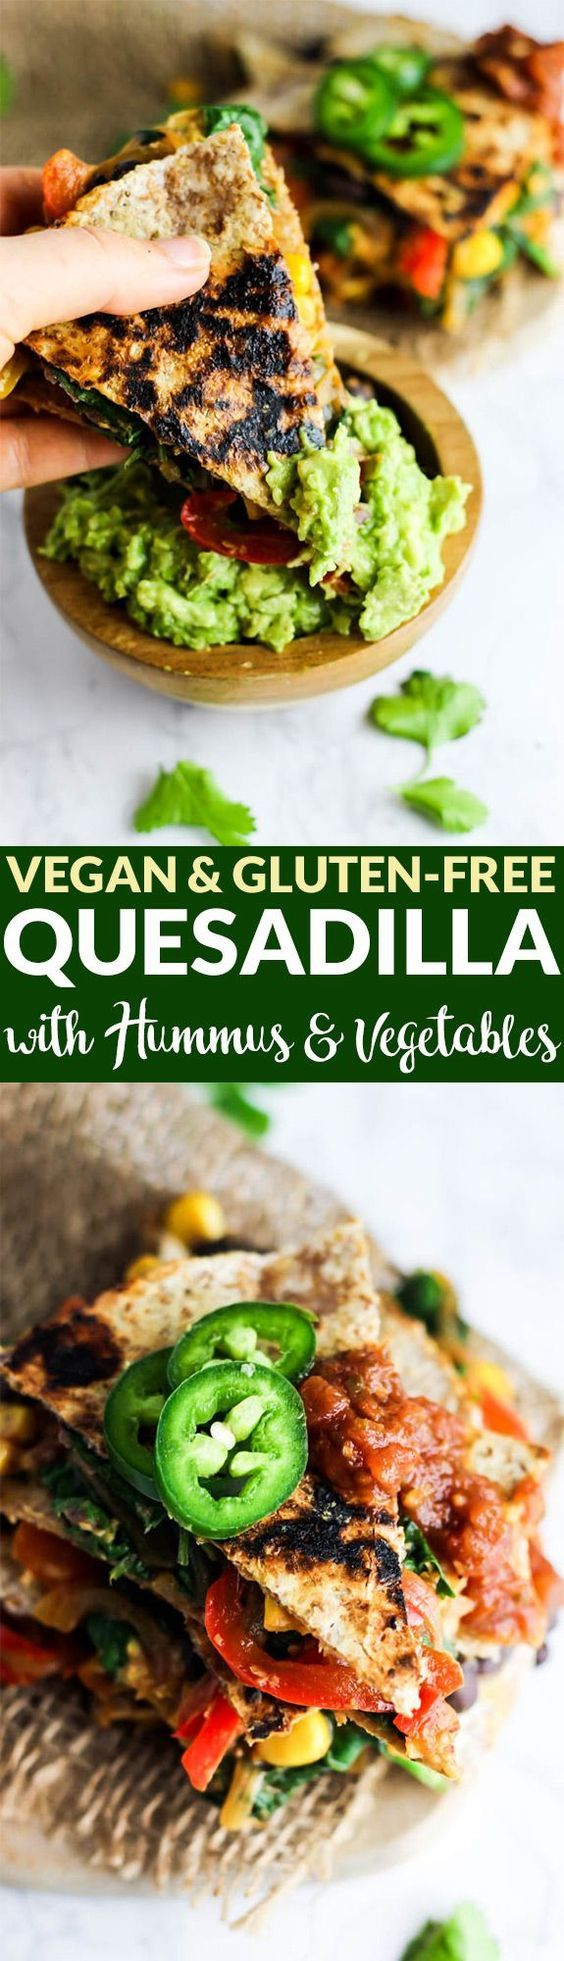 cool Vegan Quesadilla with Hummus & Vegetables